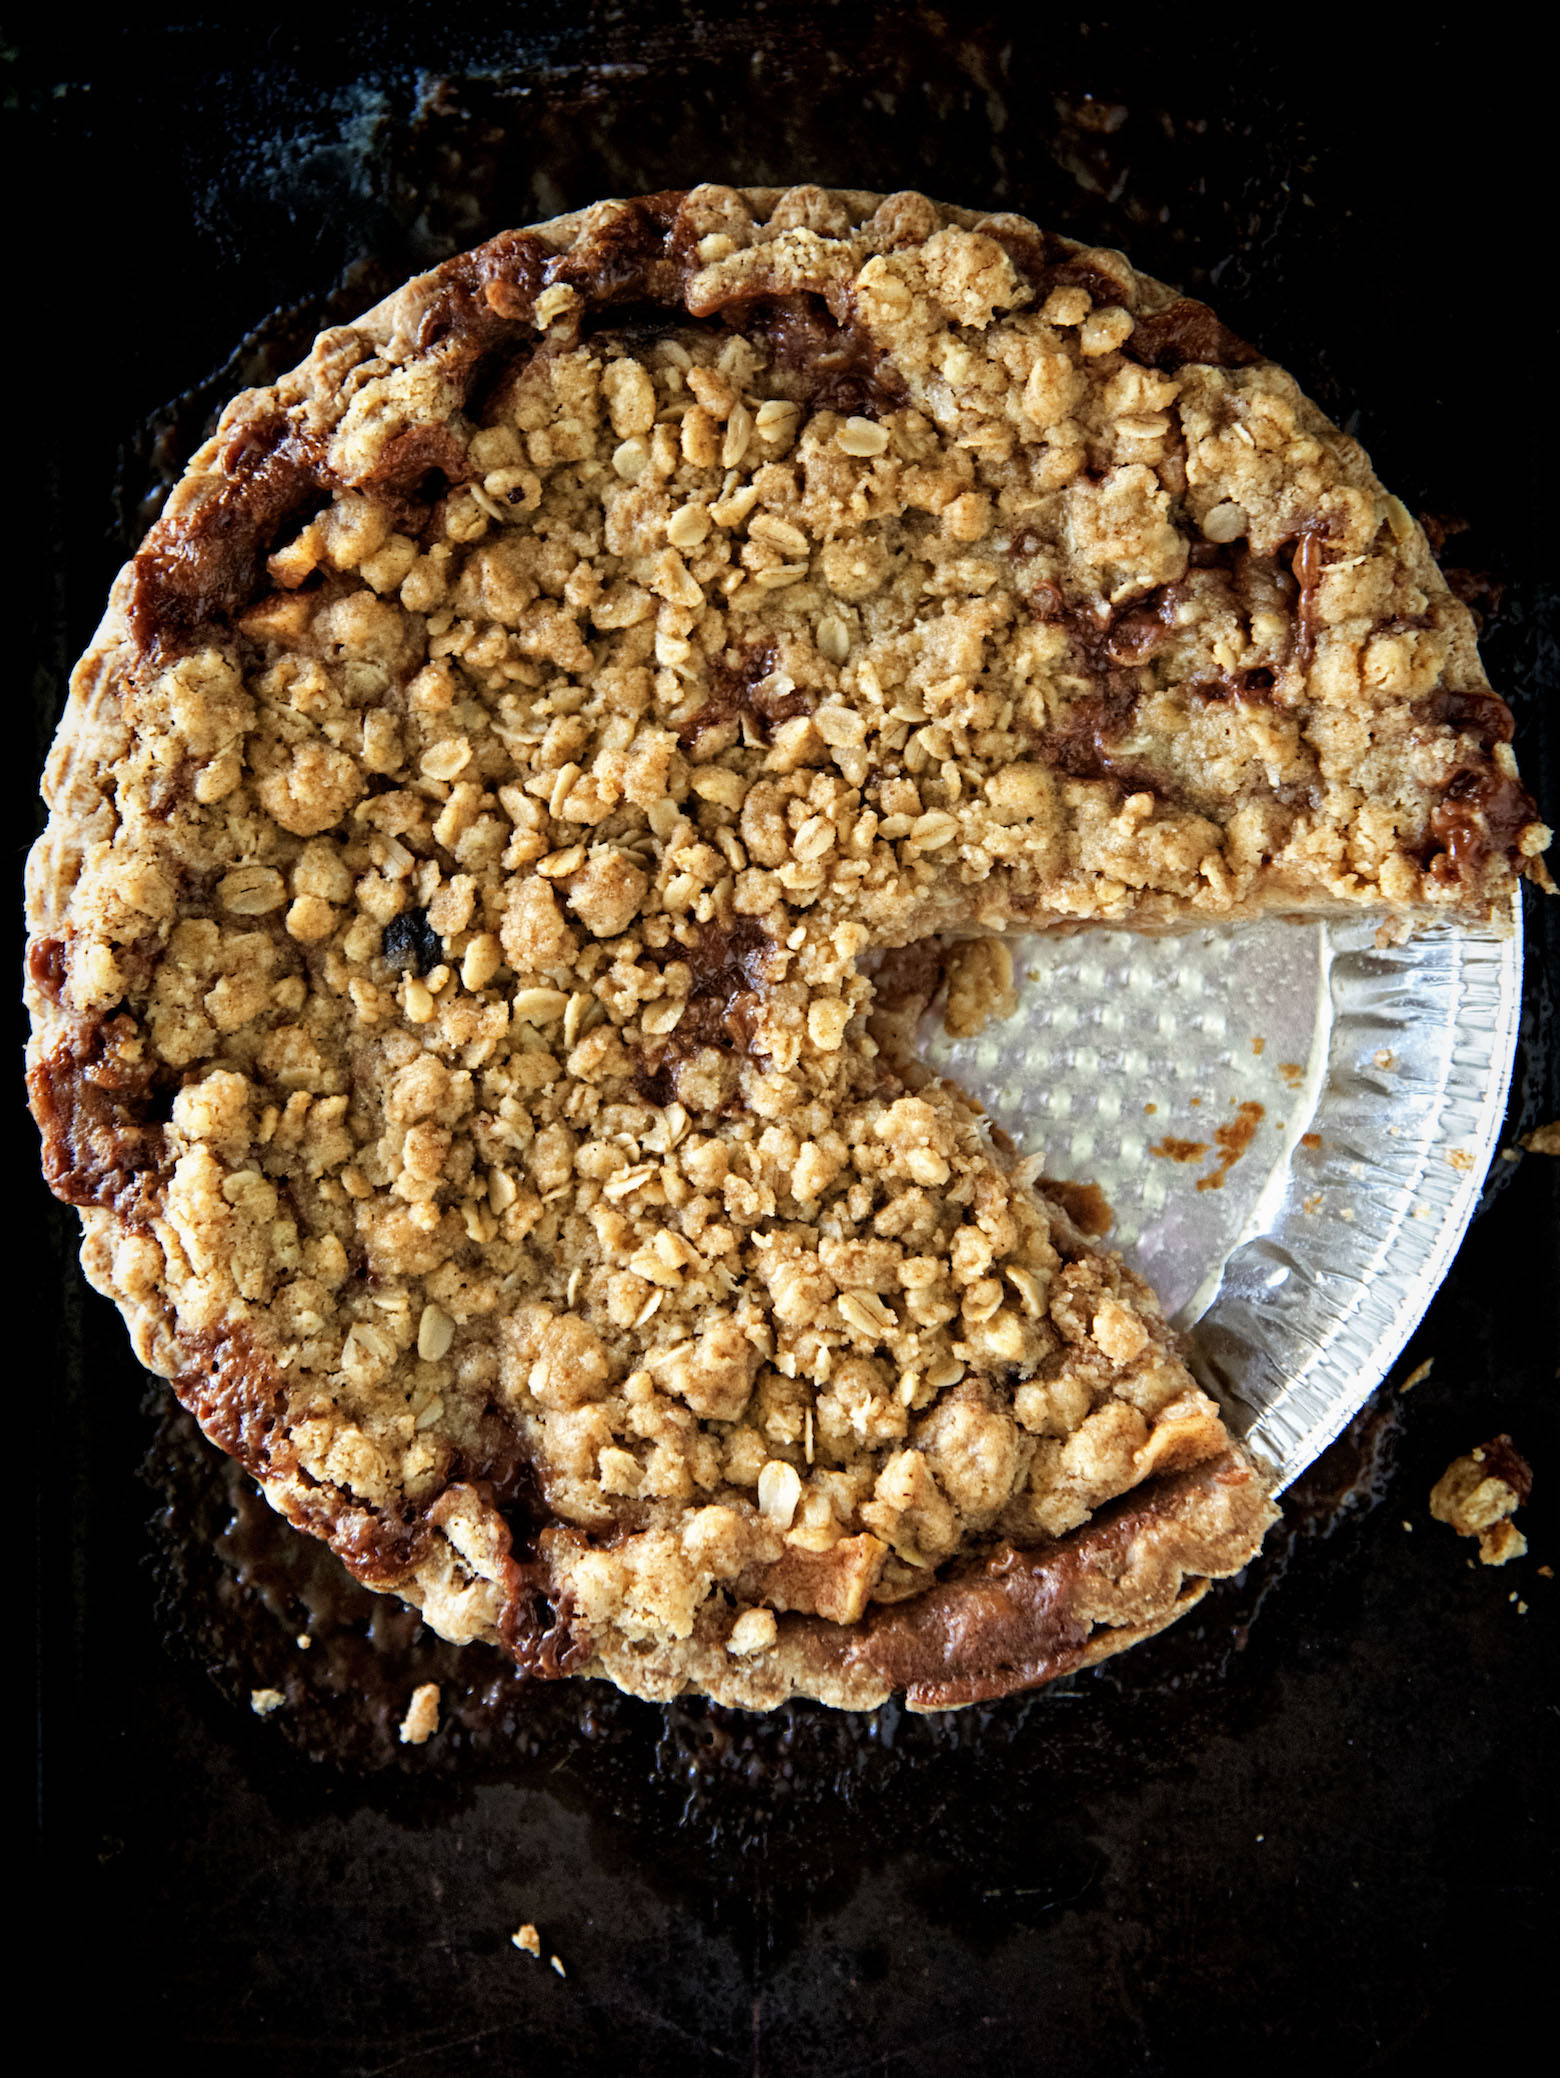 Oatmeal Crumble Caramel Apple Pie